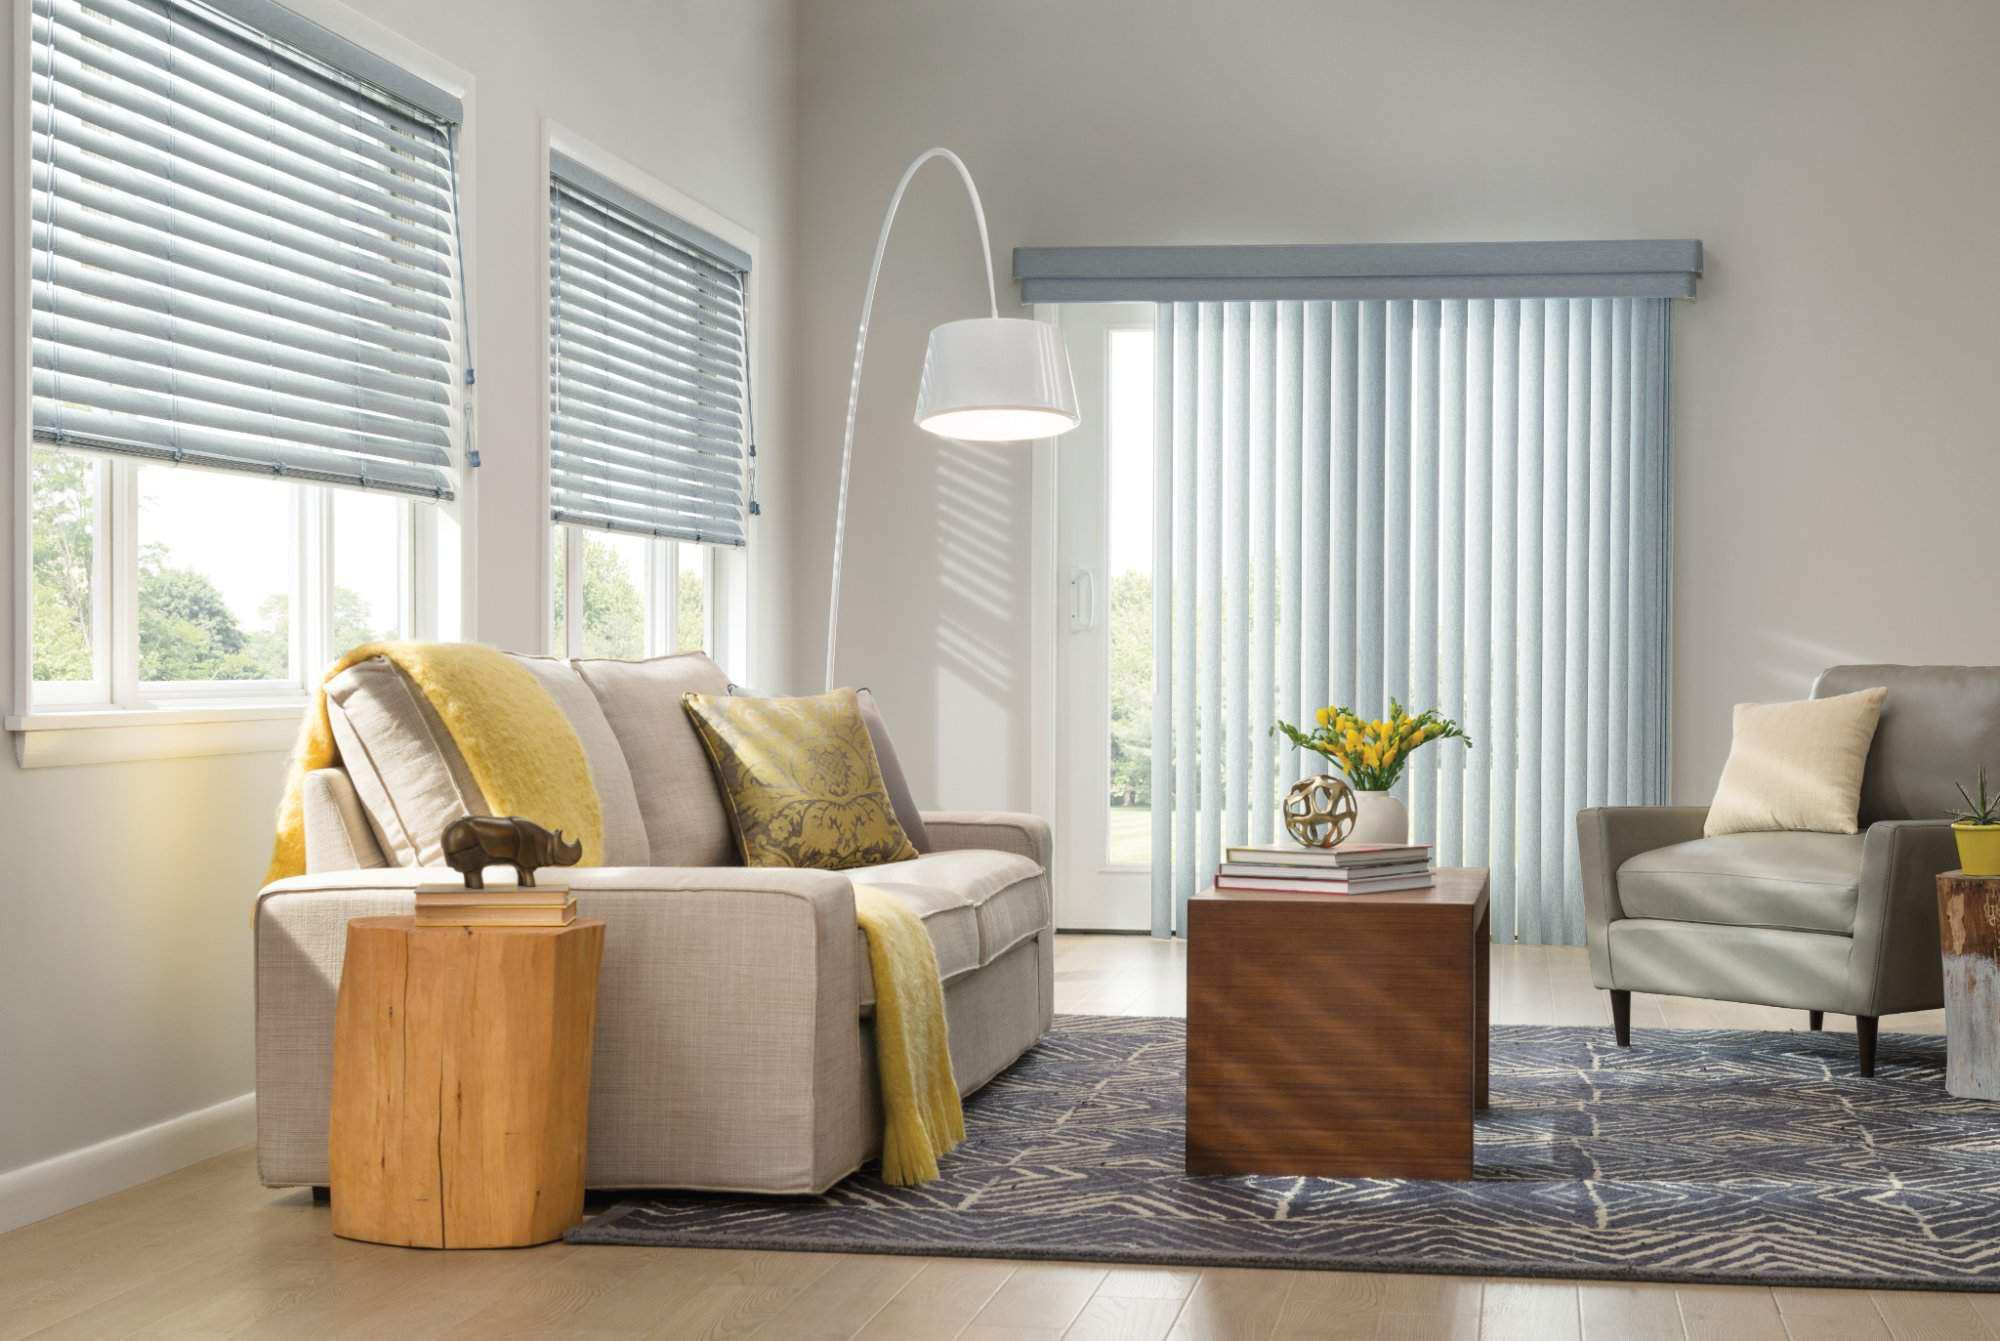 Vinyl Vertical Blinds with Wand Control